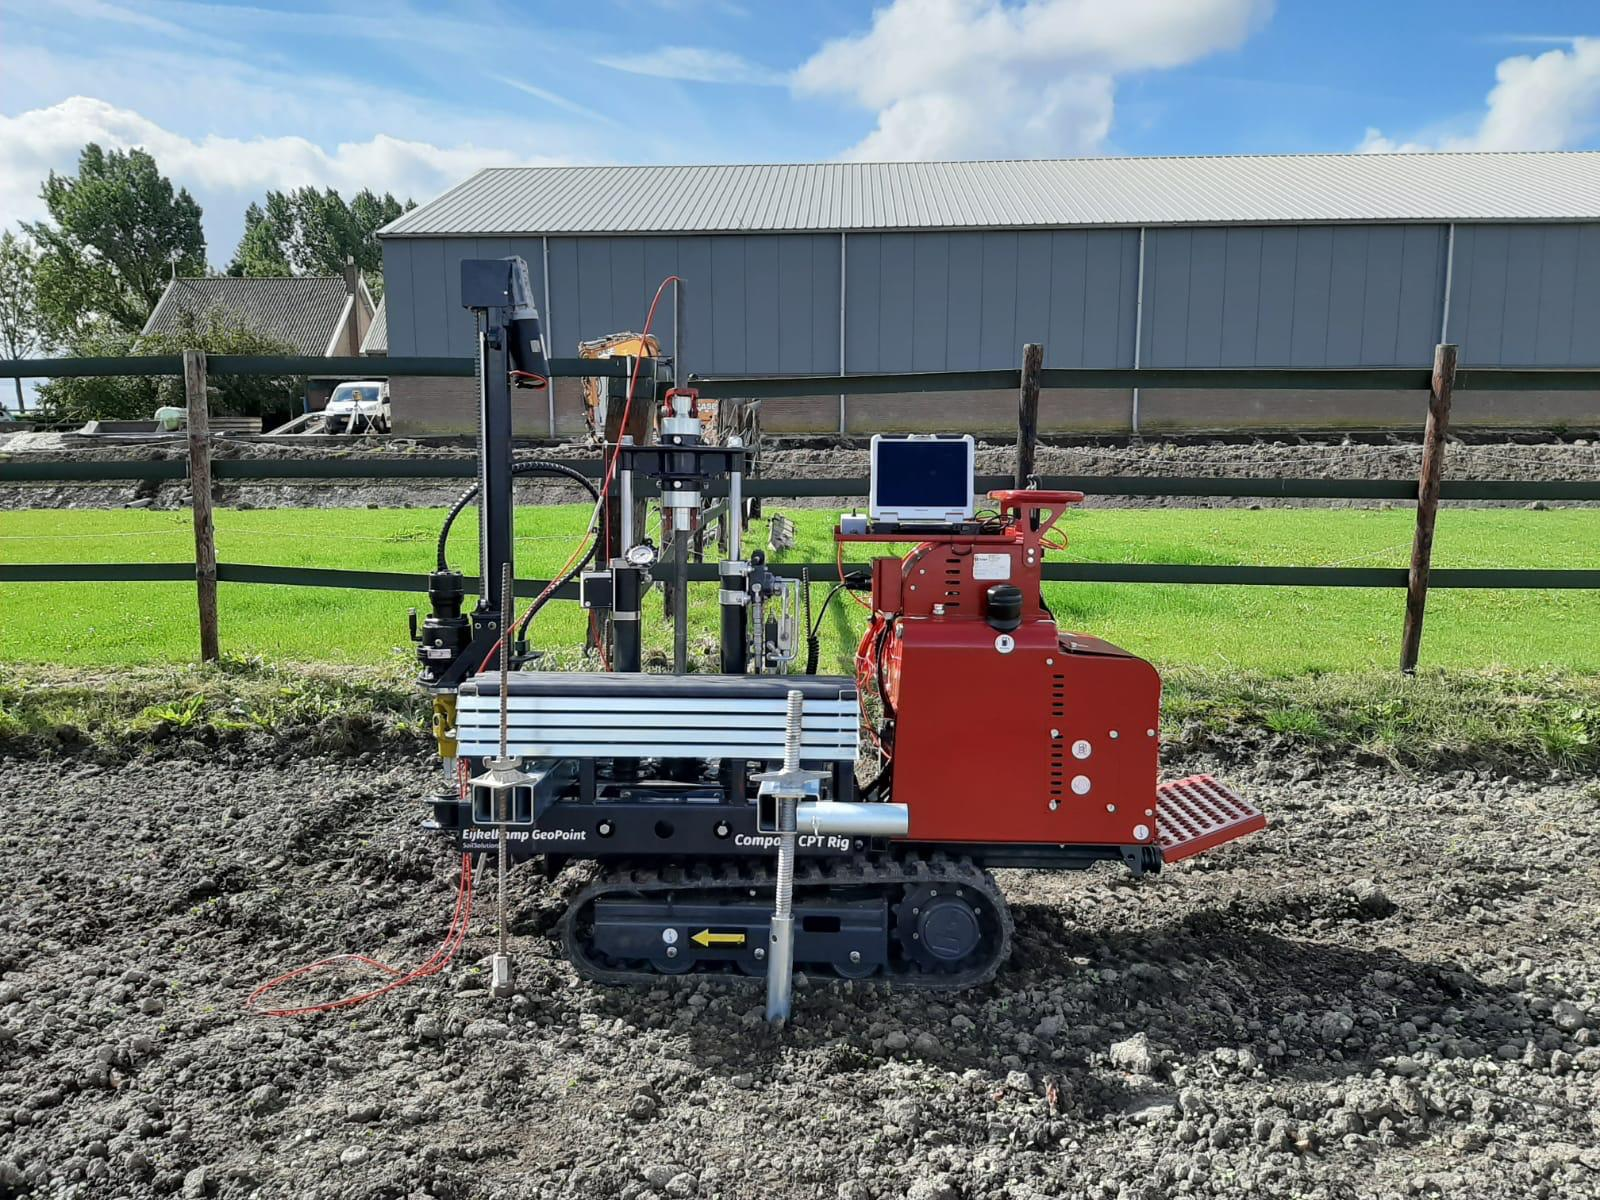 A Compact CPT rig being used for sample testing